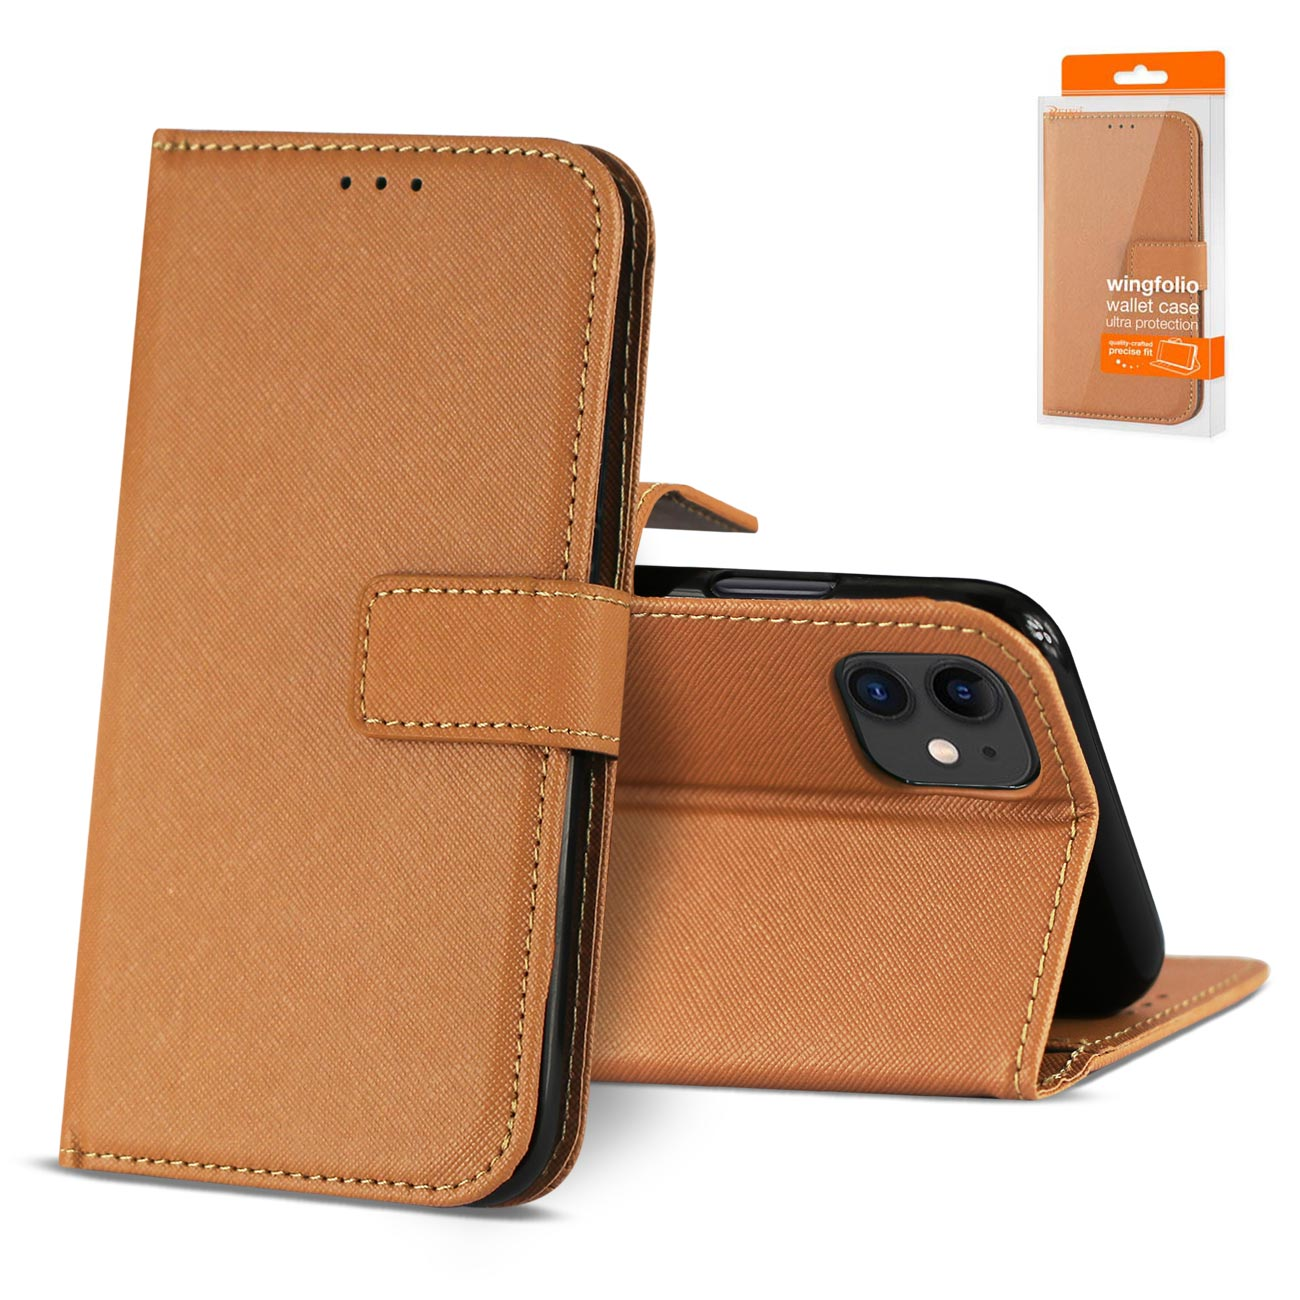 APPLE IPHONE 11 3-In-1 Wallet Case In BROWN